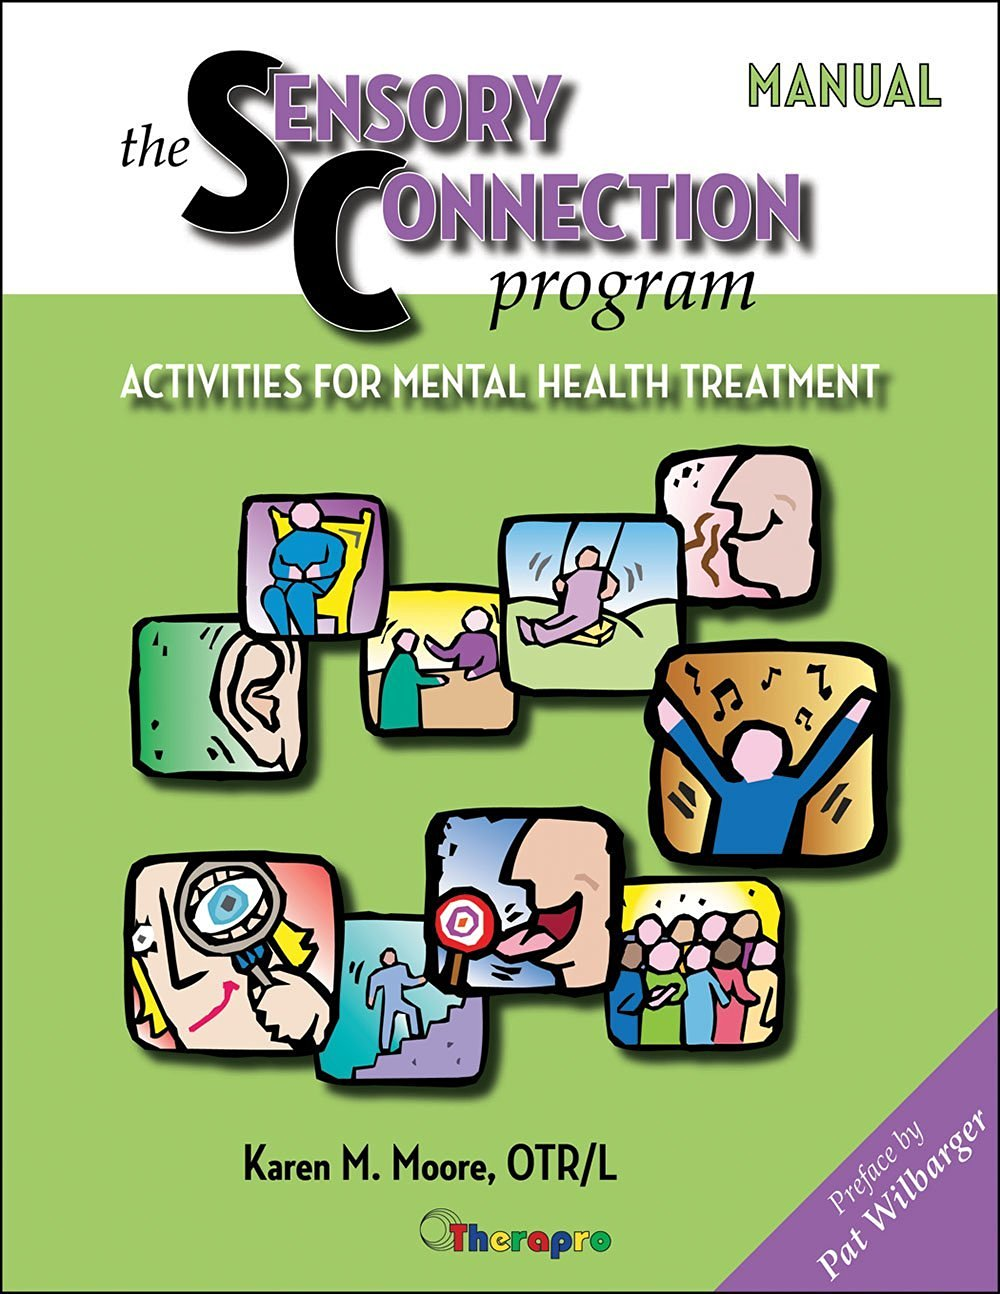 The Sensory Connection Program Manual: Activities for Mental Health Treatment (The Sensory Connection Program)